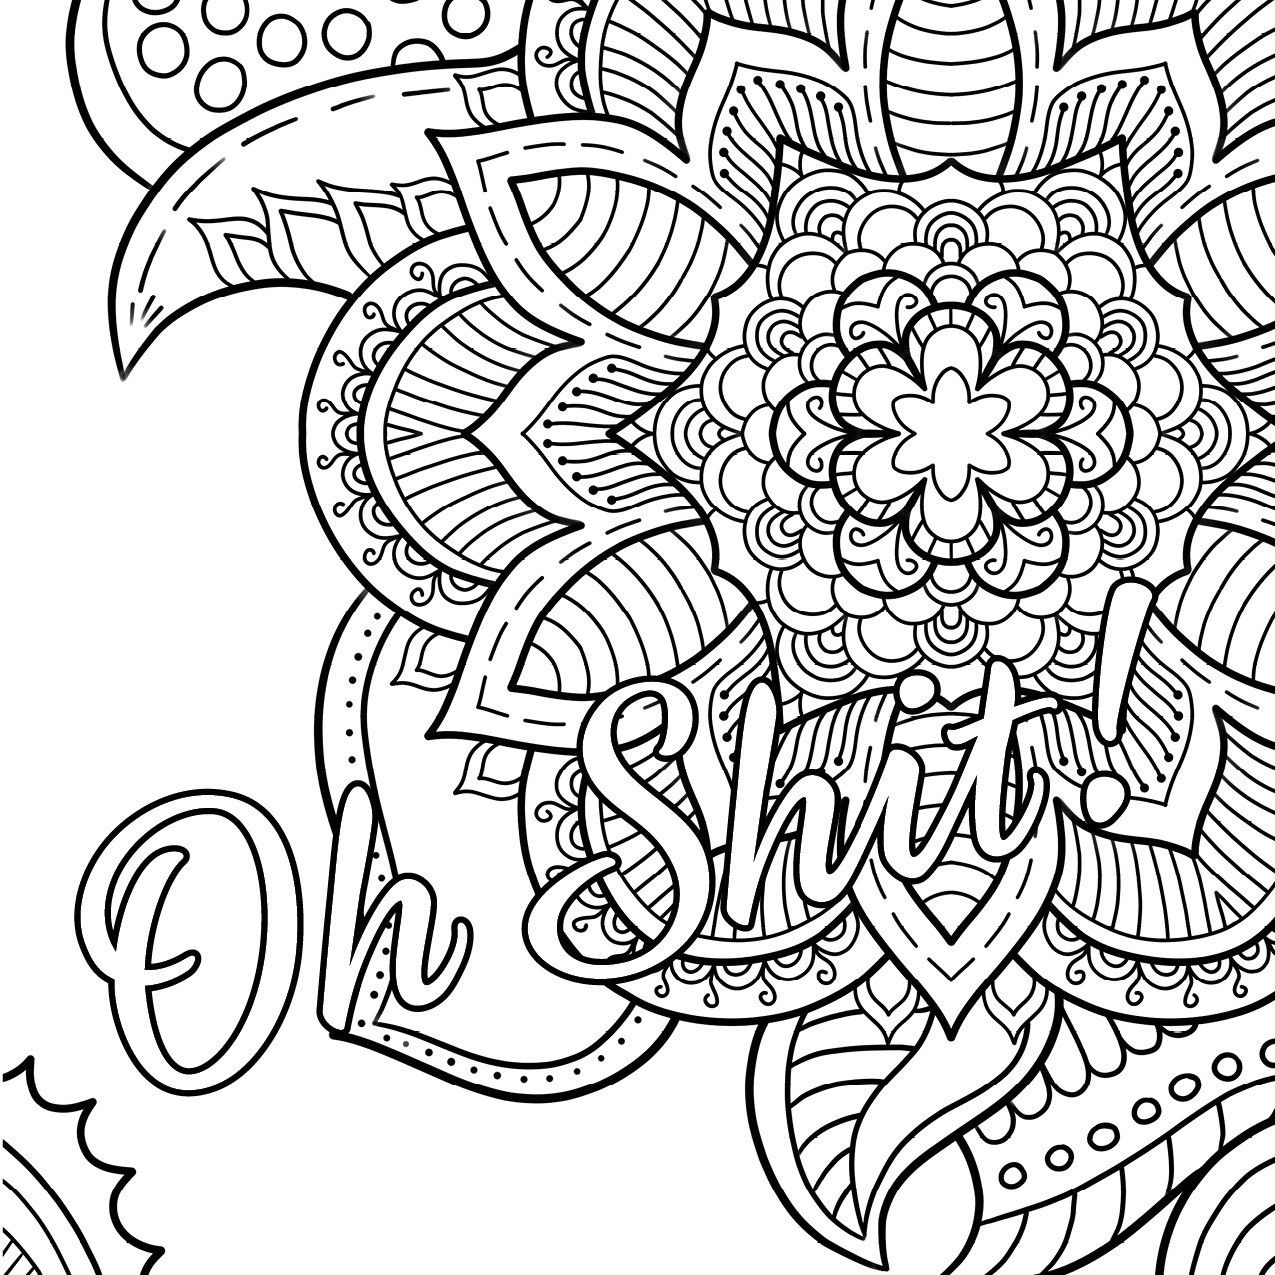 Swear Word Coloring Book #2 Free Printable Coloring Pages For Adults - Free Printable Coloring Pages For Adults Swear Words